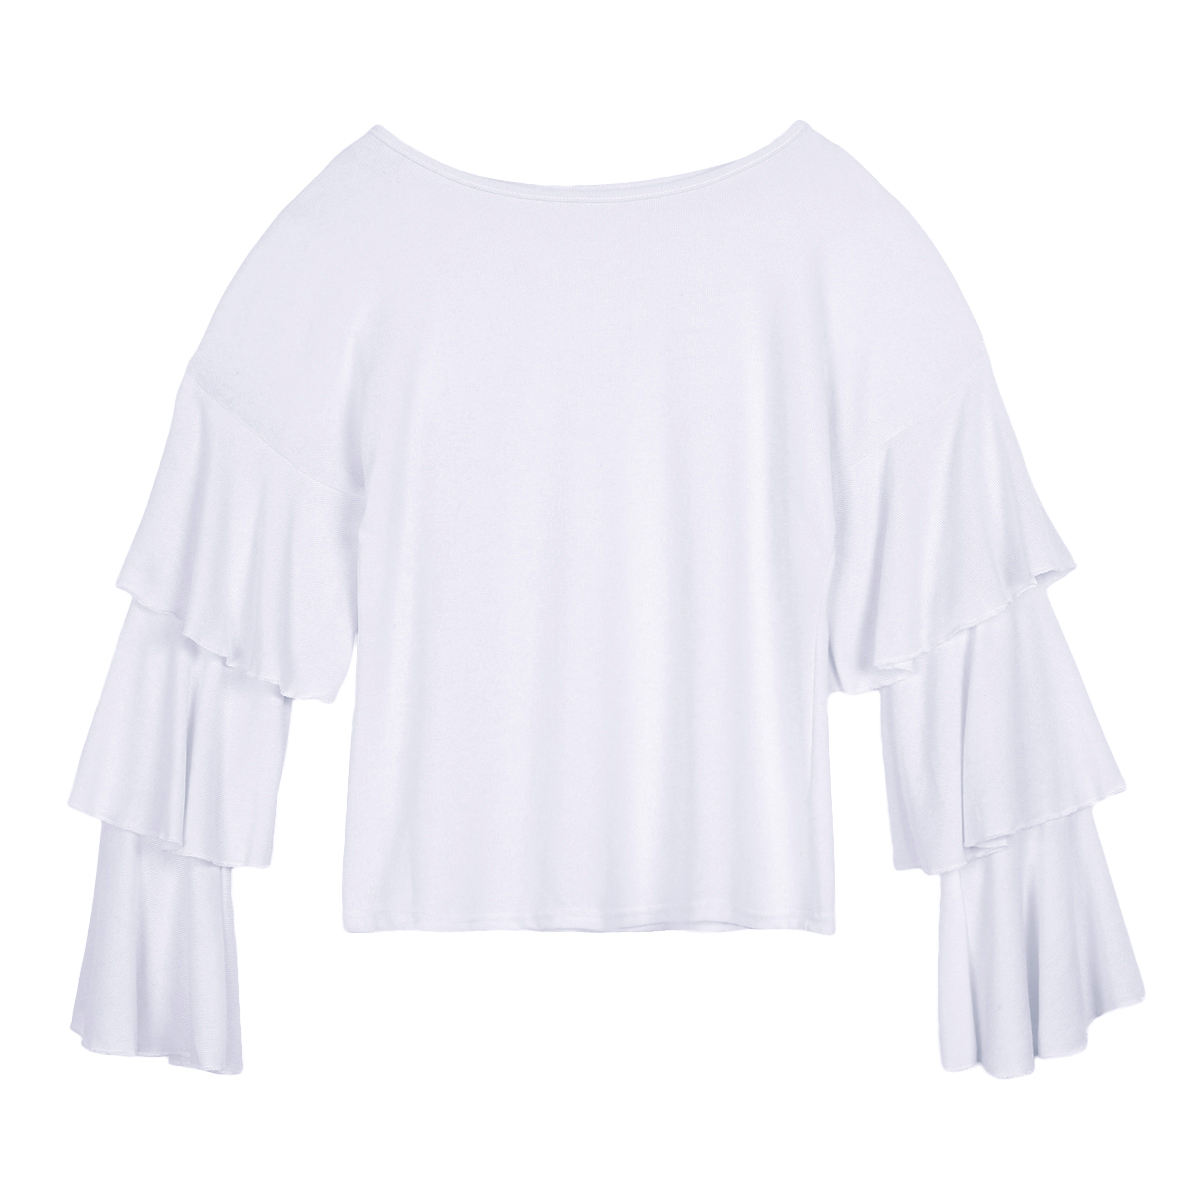 New 2018 Fashion Women Ruffle Long Sleeve Tops T shirt Pullover Solid White Tee Shirt